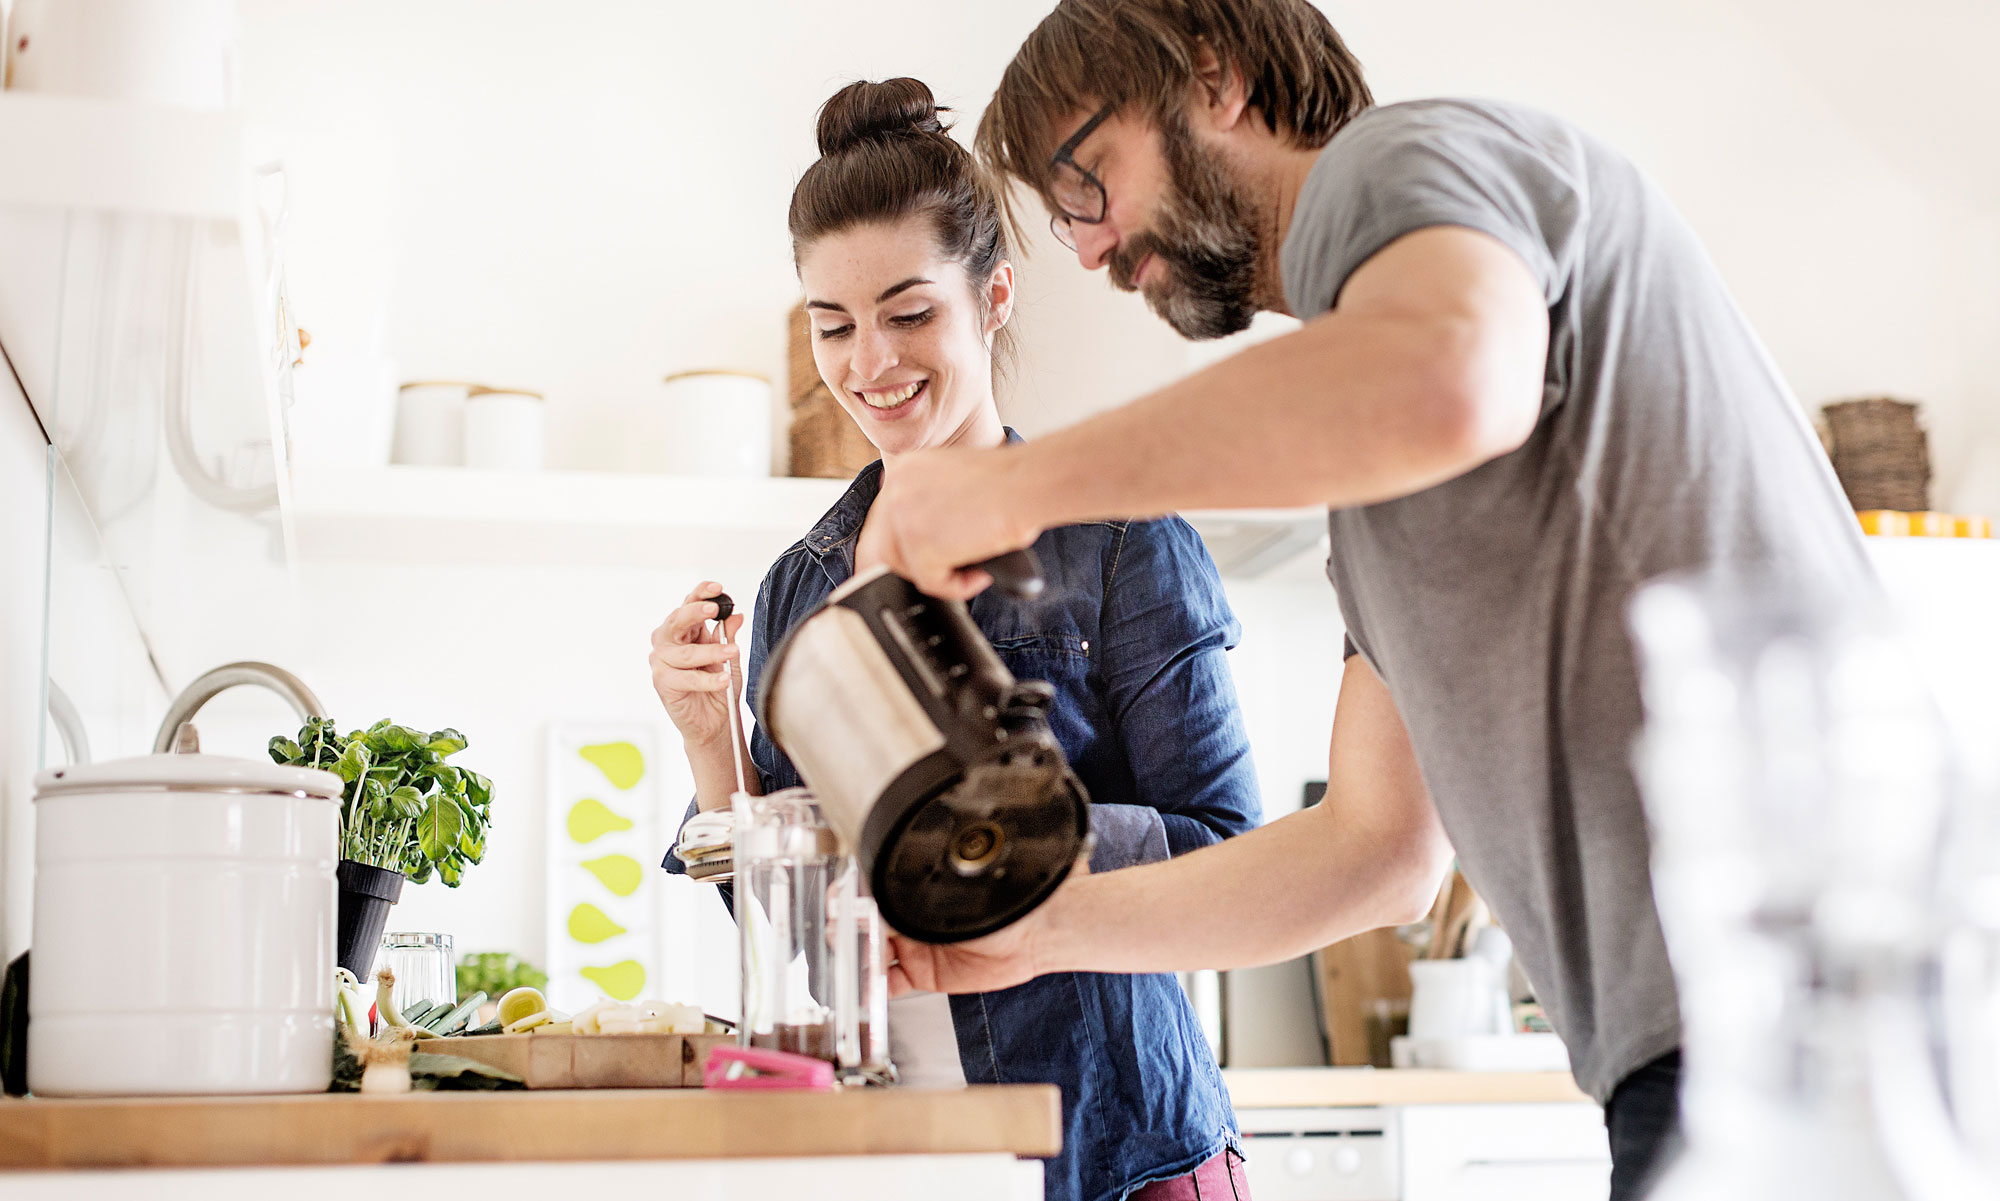 Couple making coffee at home.